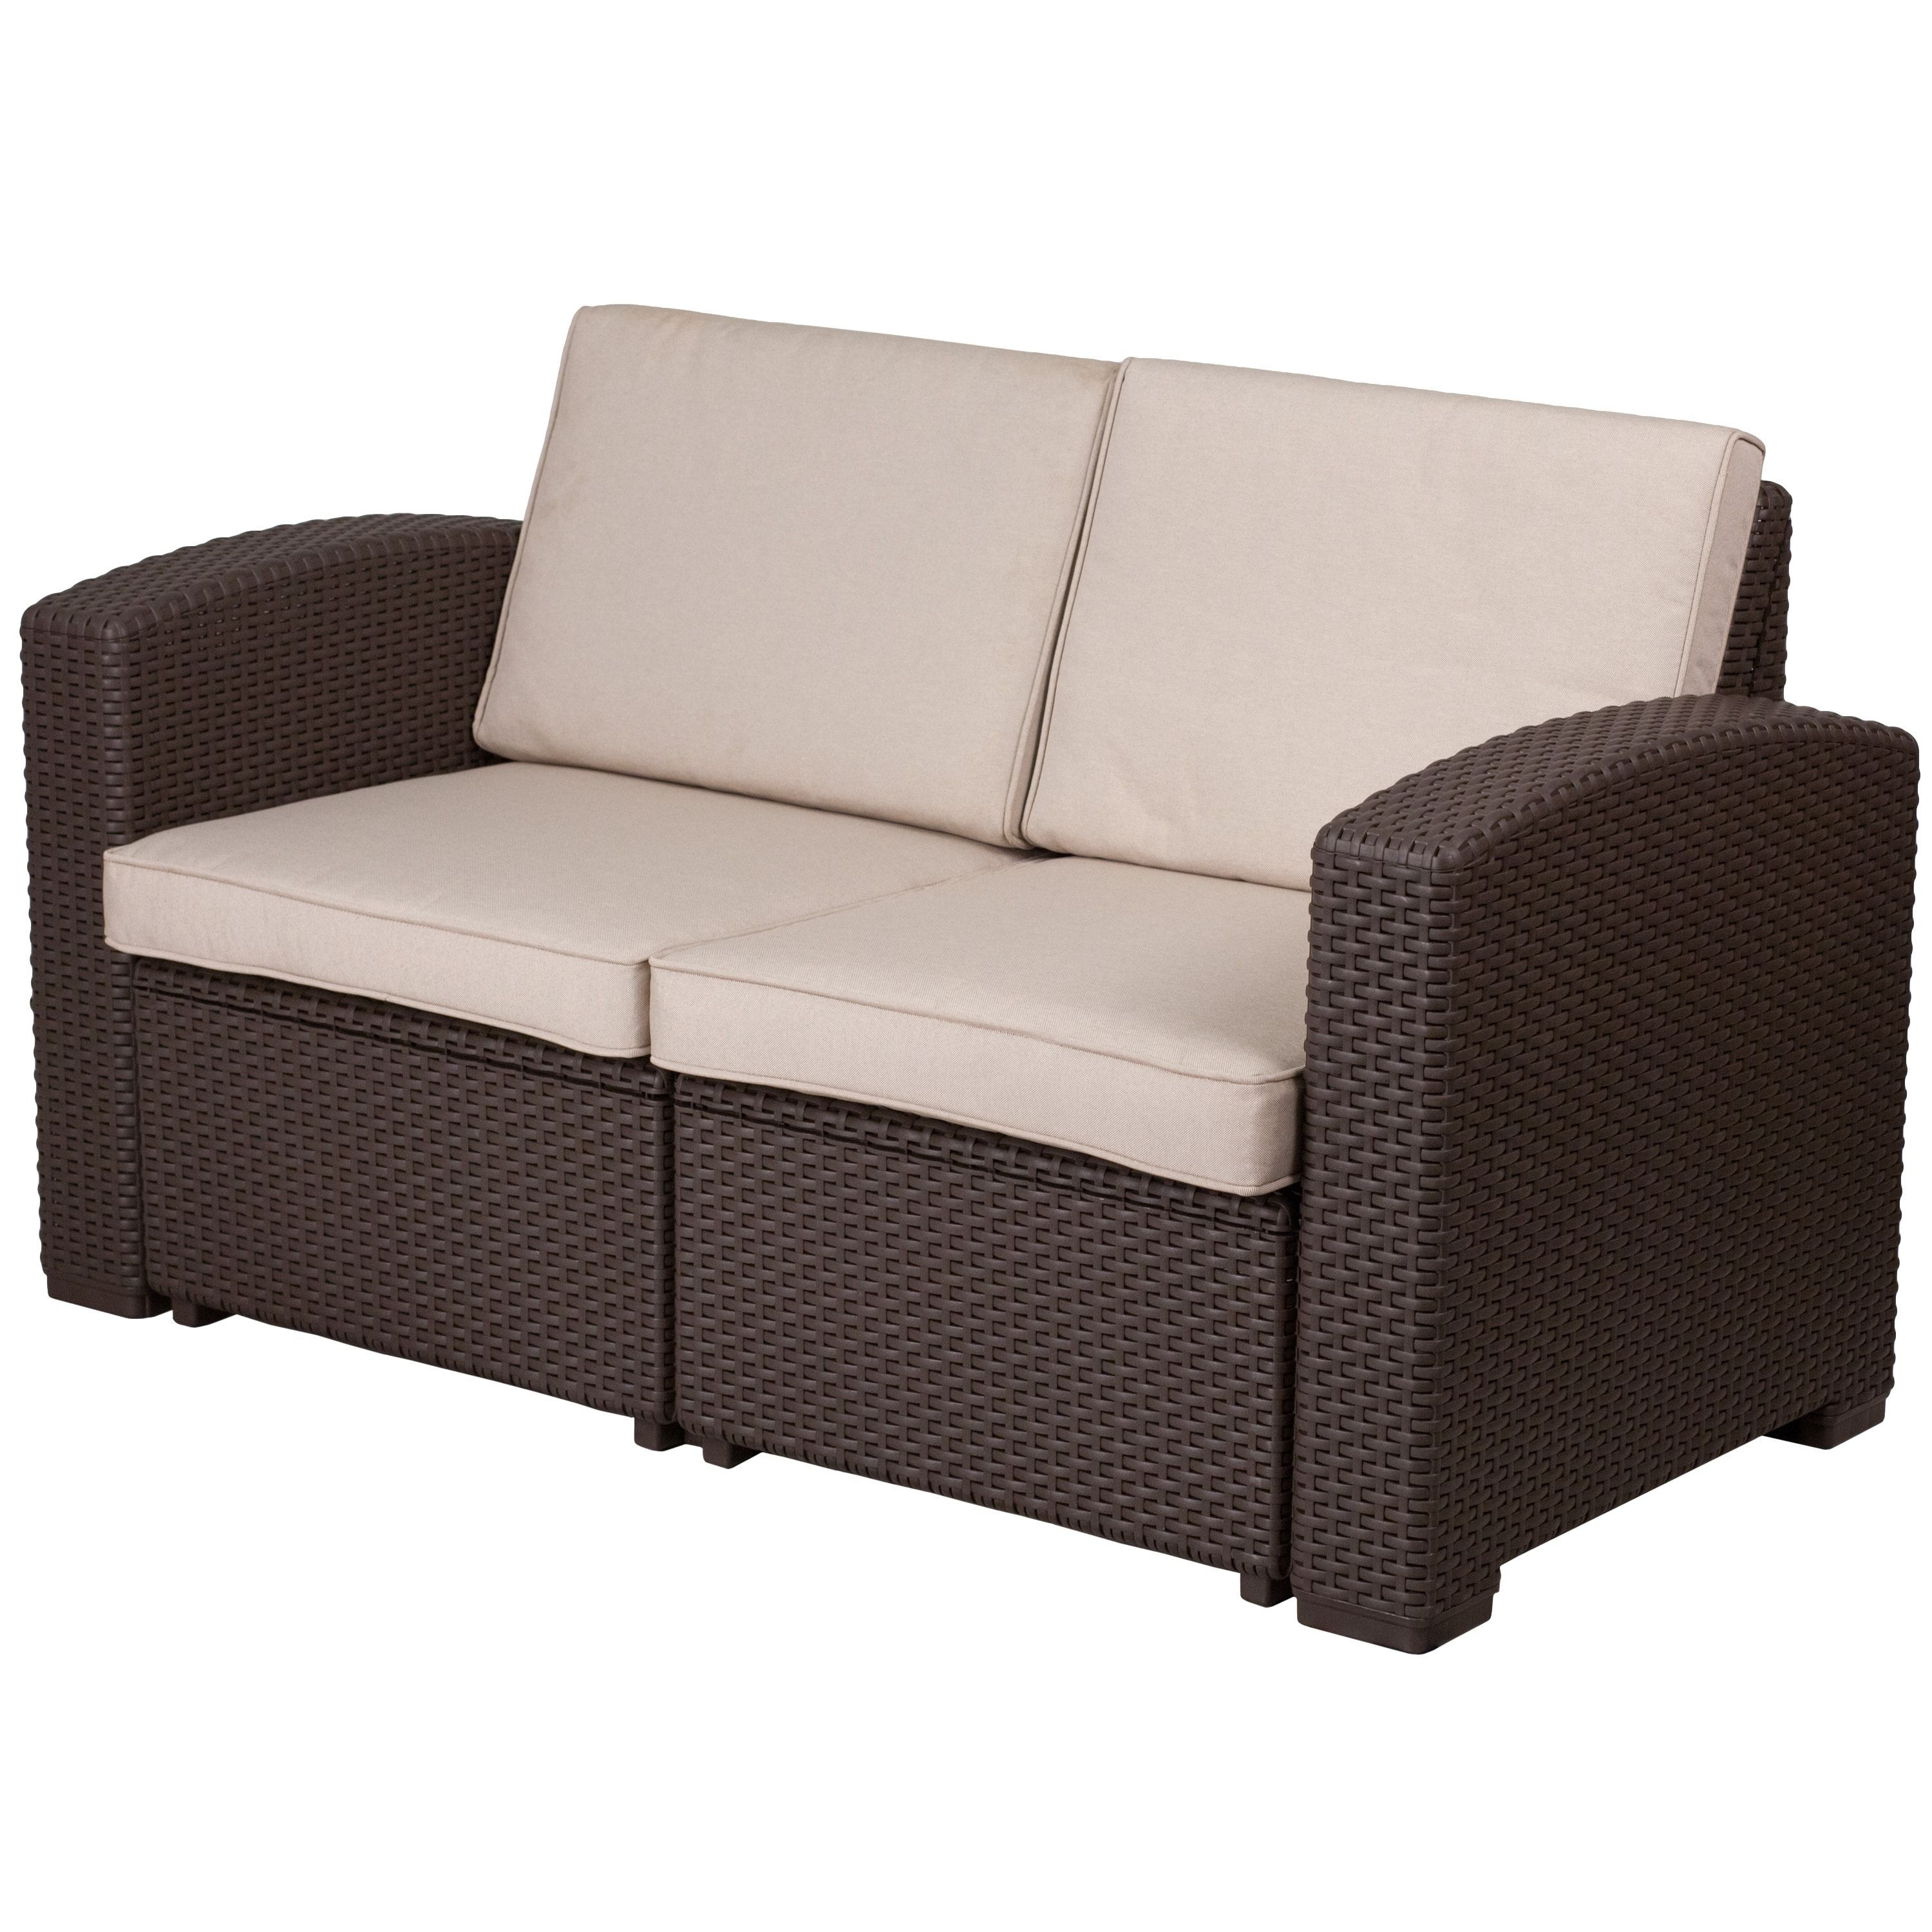 Clifford Patio Sofas With Cushions Within Favorite Faux Rattan Loveseat With All Weather Cushions (Chocolate (View 5 of 20)